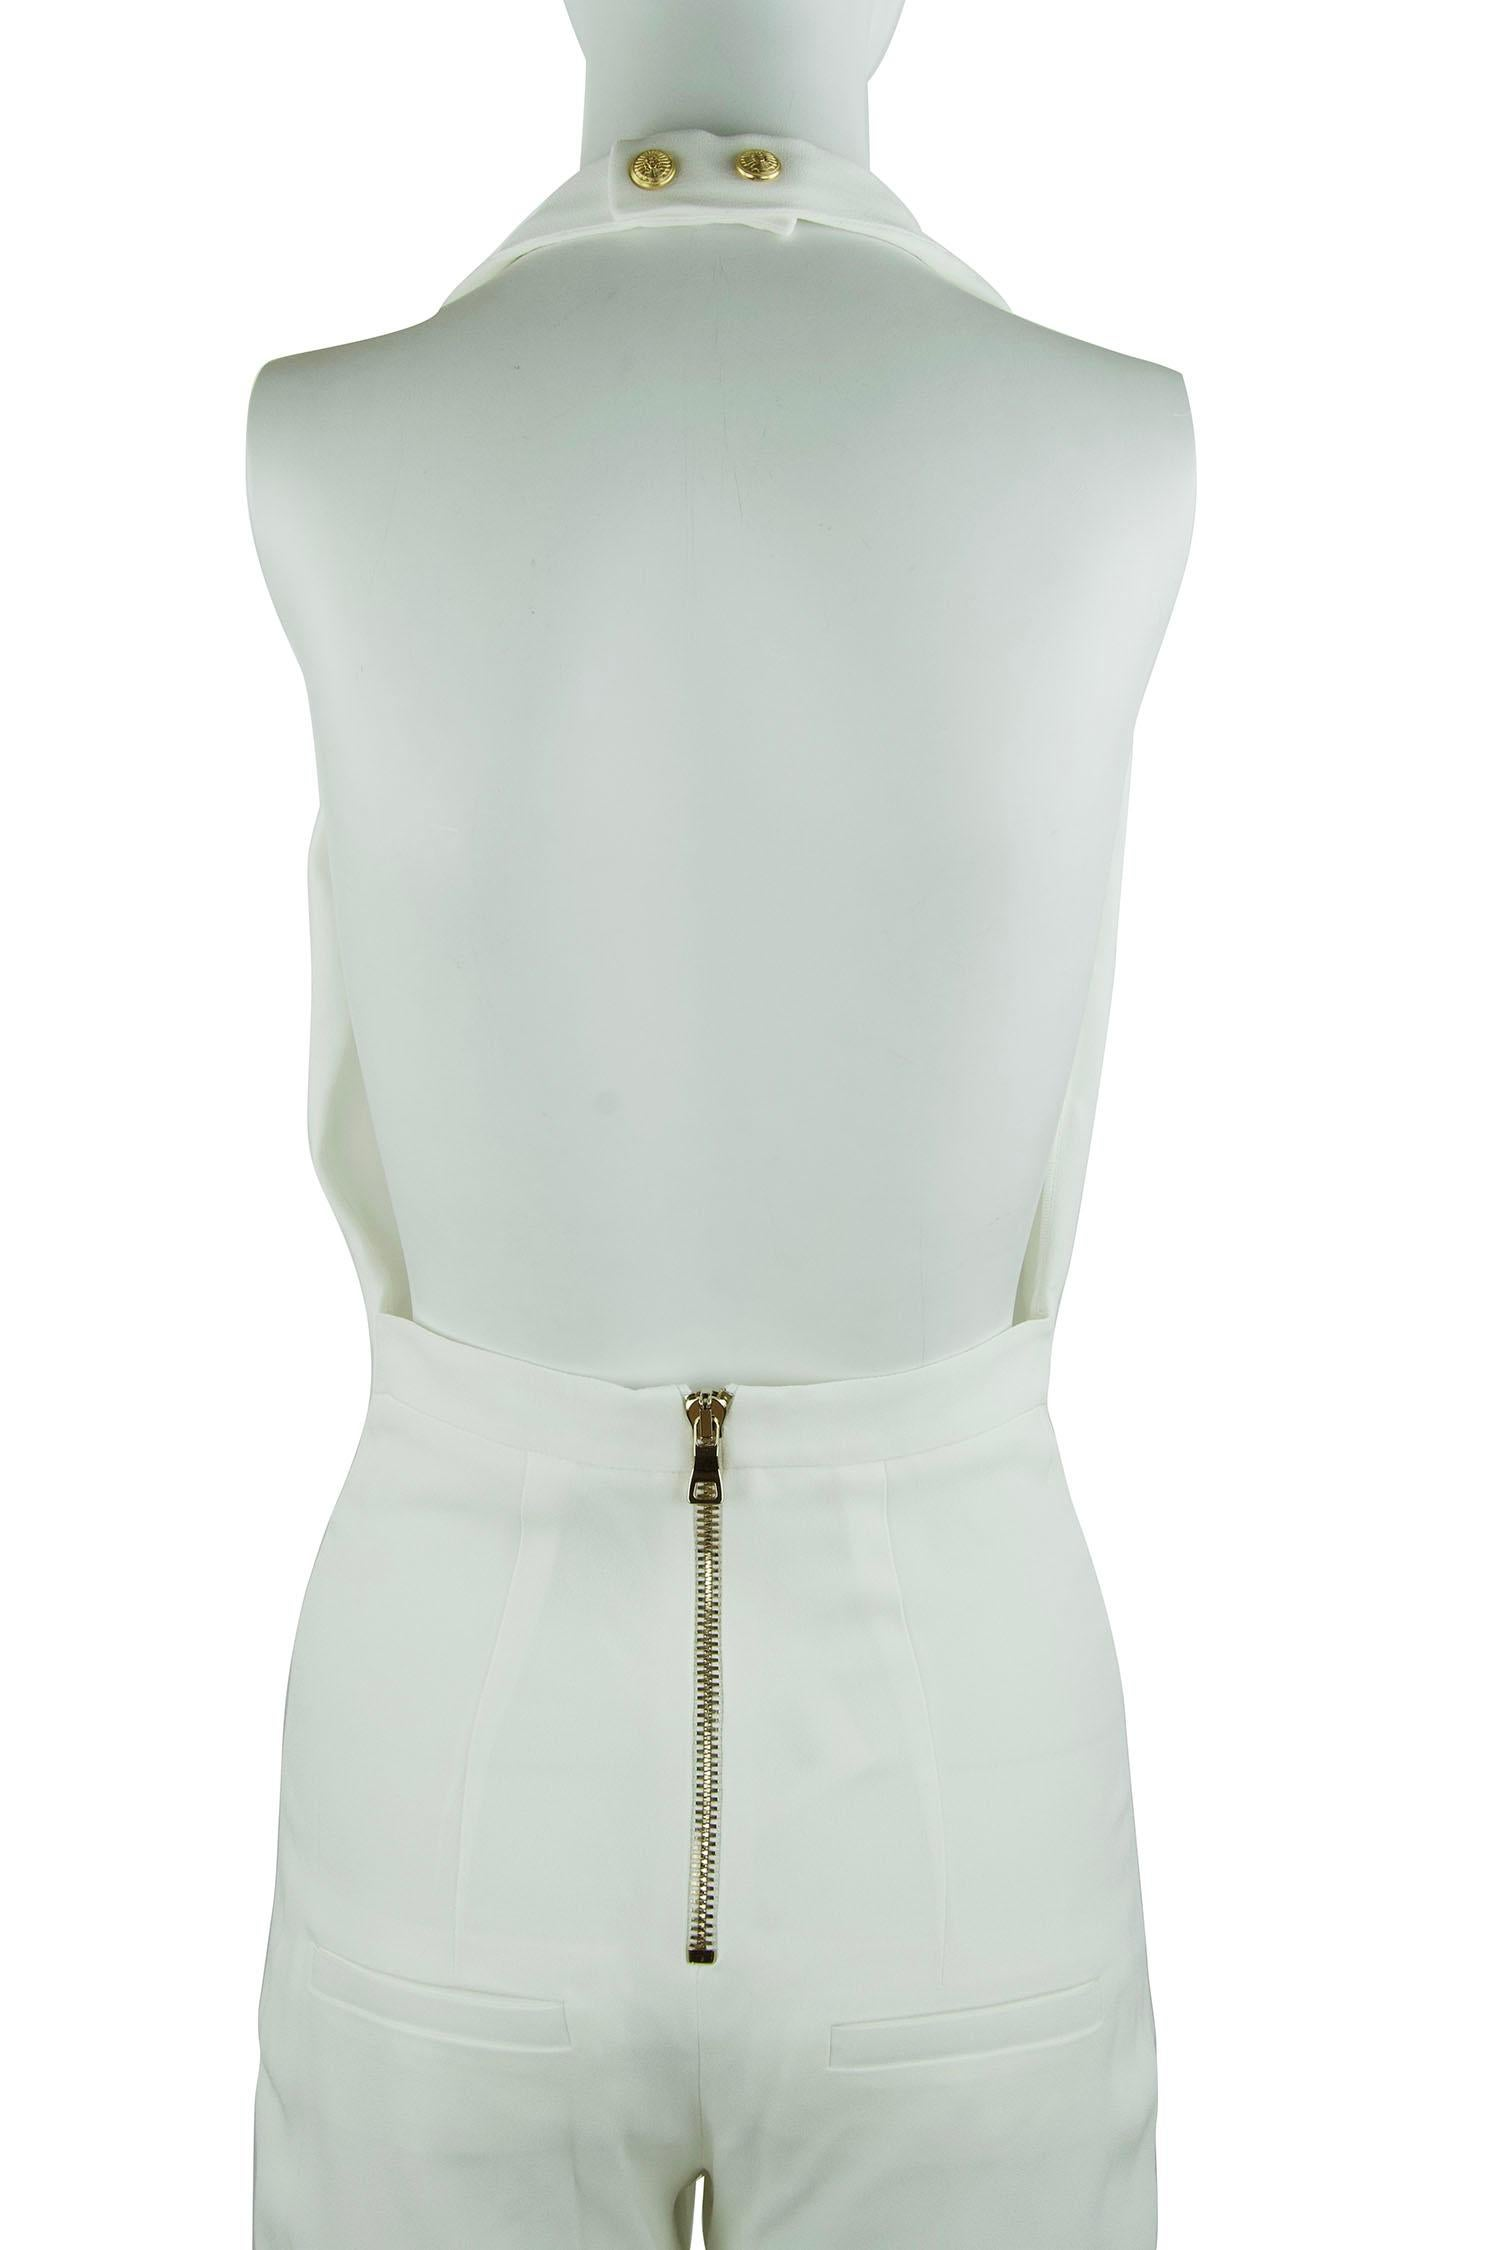 e3e84a5fd41 Balmain White Halter Jumpsuit - Size FR 36 For Sale at 1stdibs